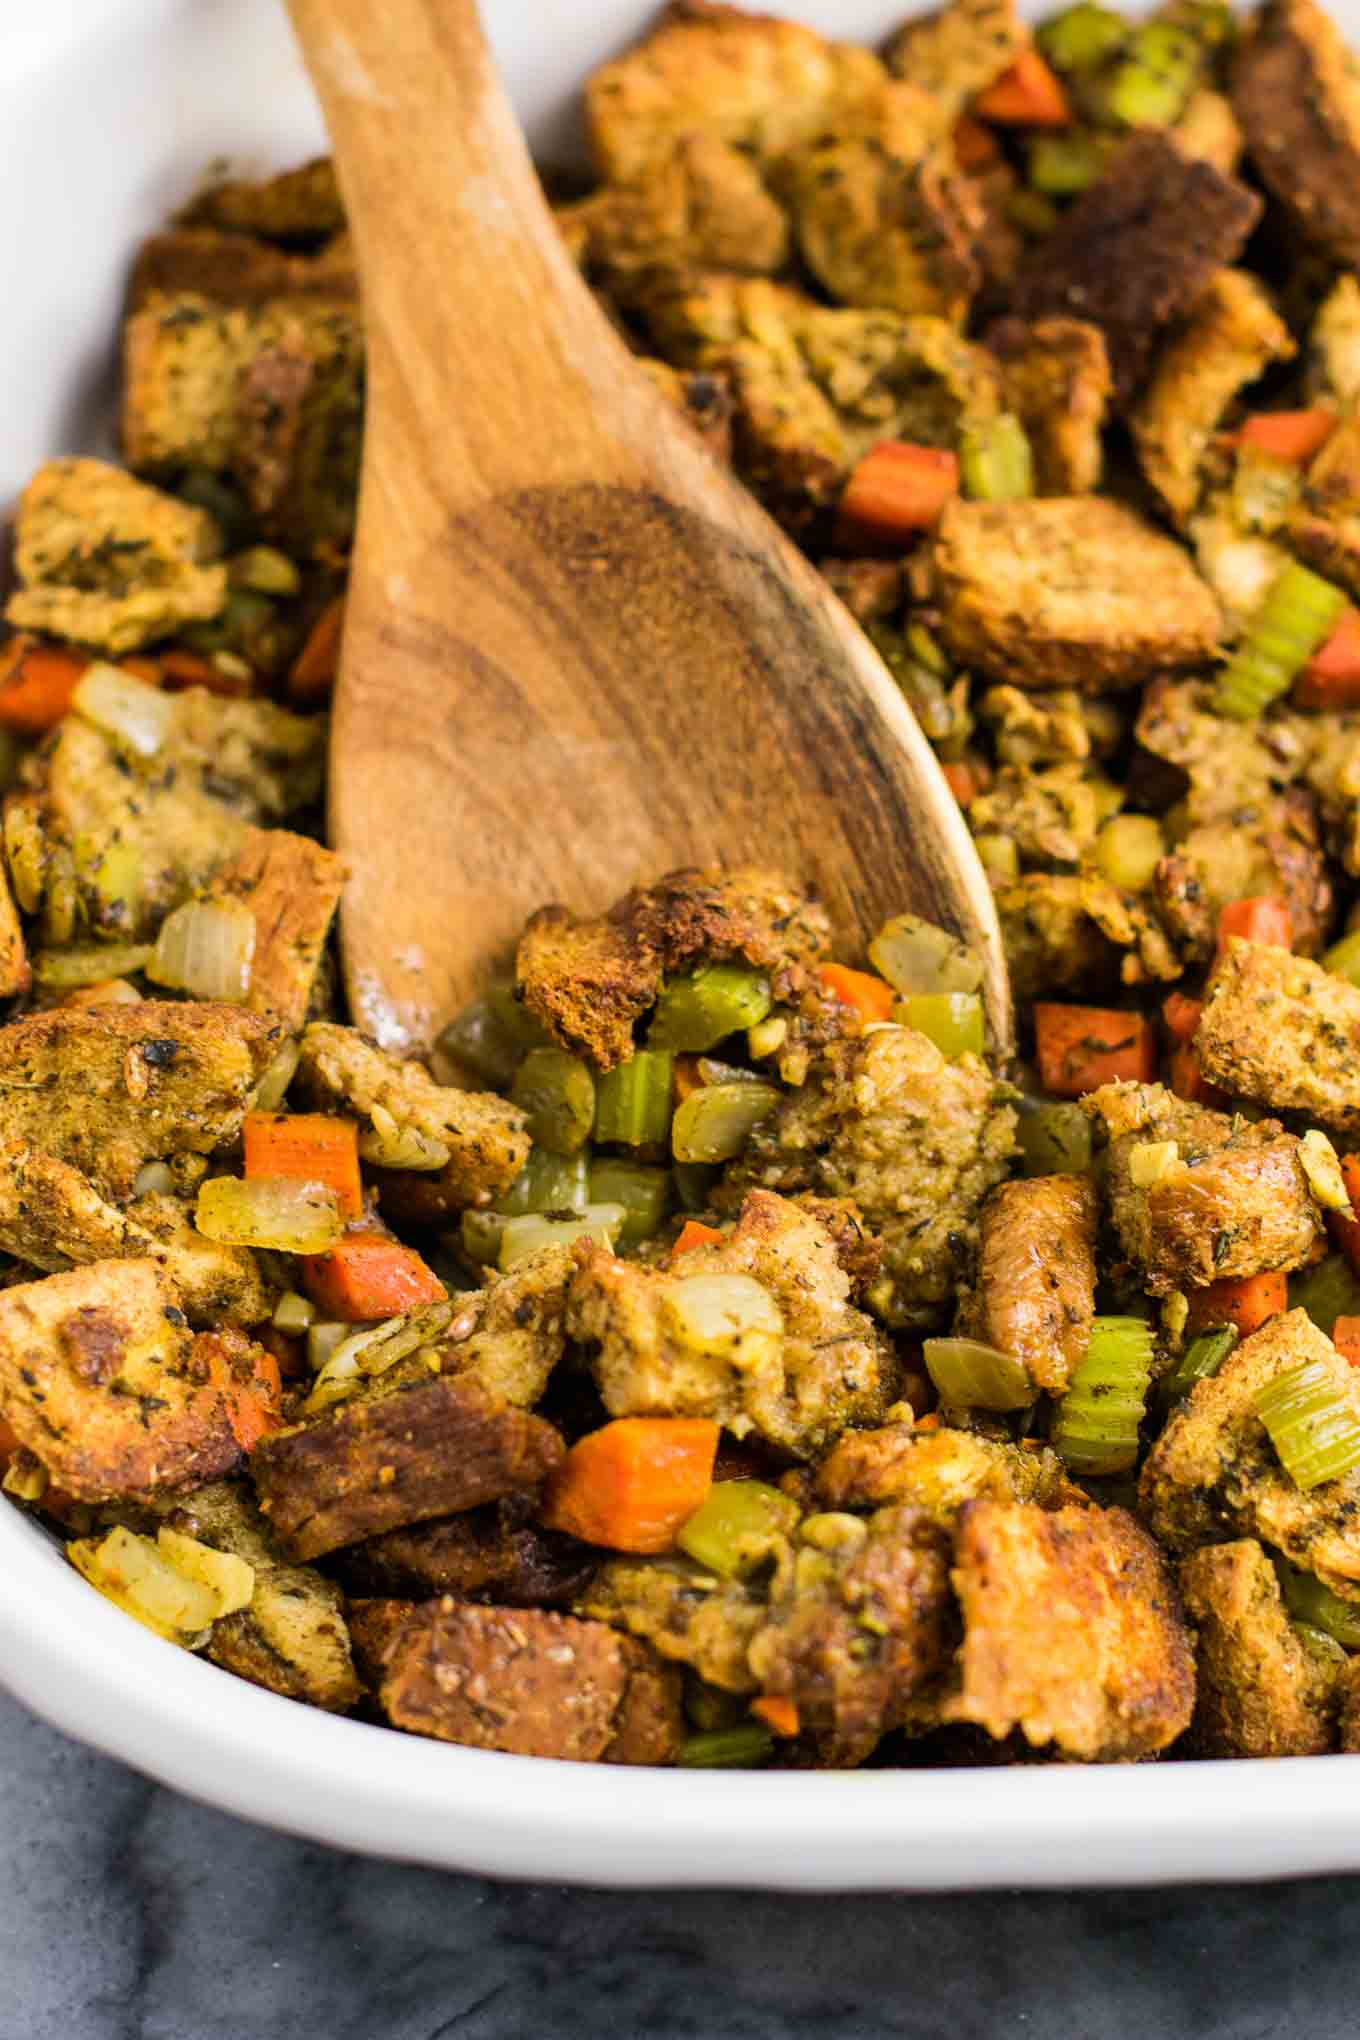 Vegan gluten free stuffing - #vegan #stuffing #thanksgiving #veganrecipe #vegetarian #thanksgivingstuffing #glutenfree